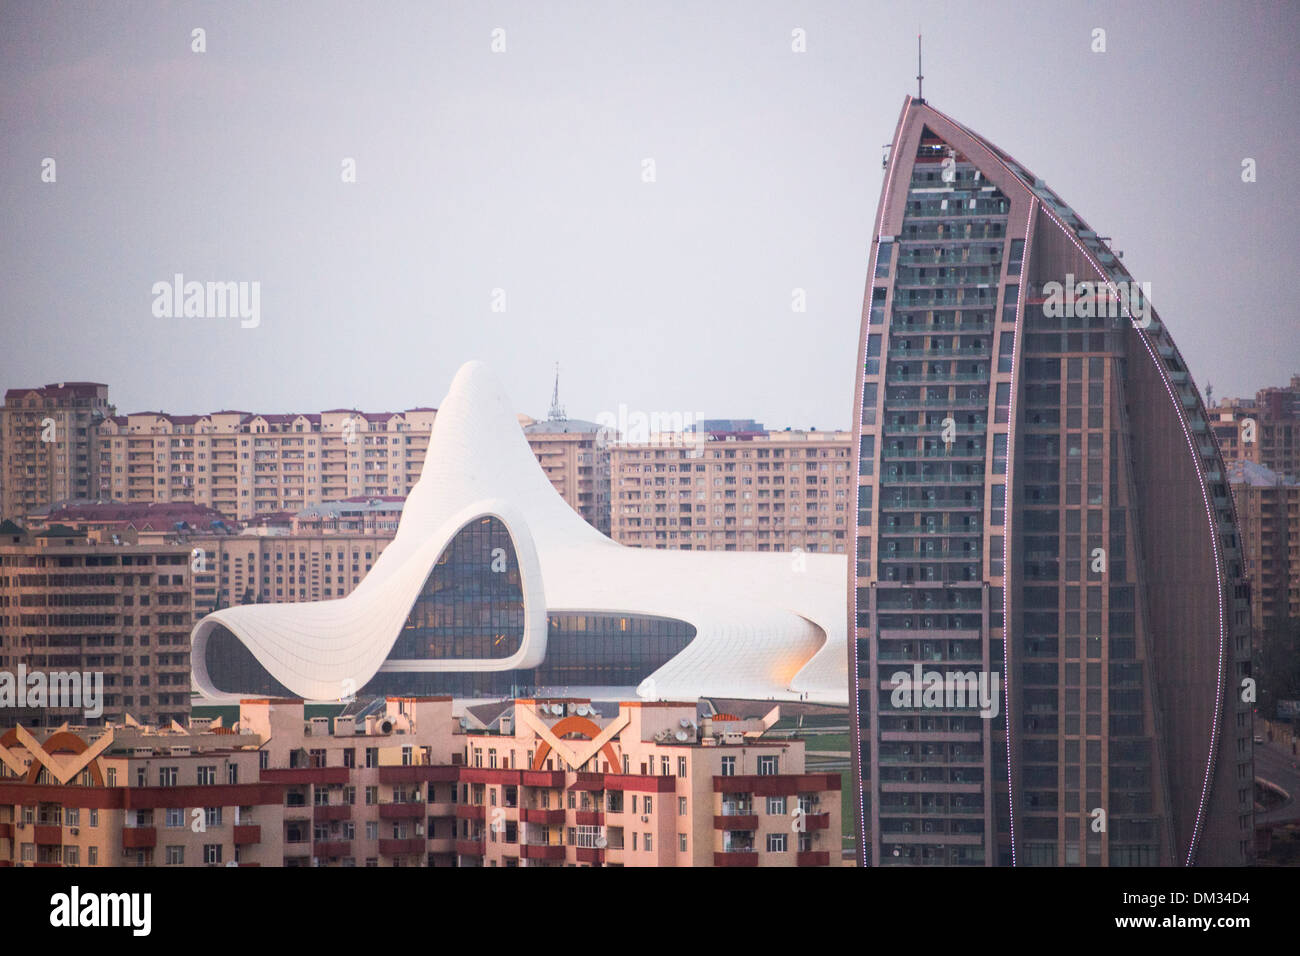 Azerbaijan Caucasus Eurasia Baku building Cultural architecture center city downtown skyline sunset touristic travel white - Stock Image